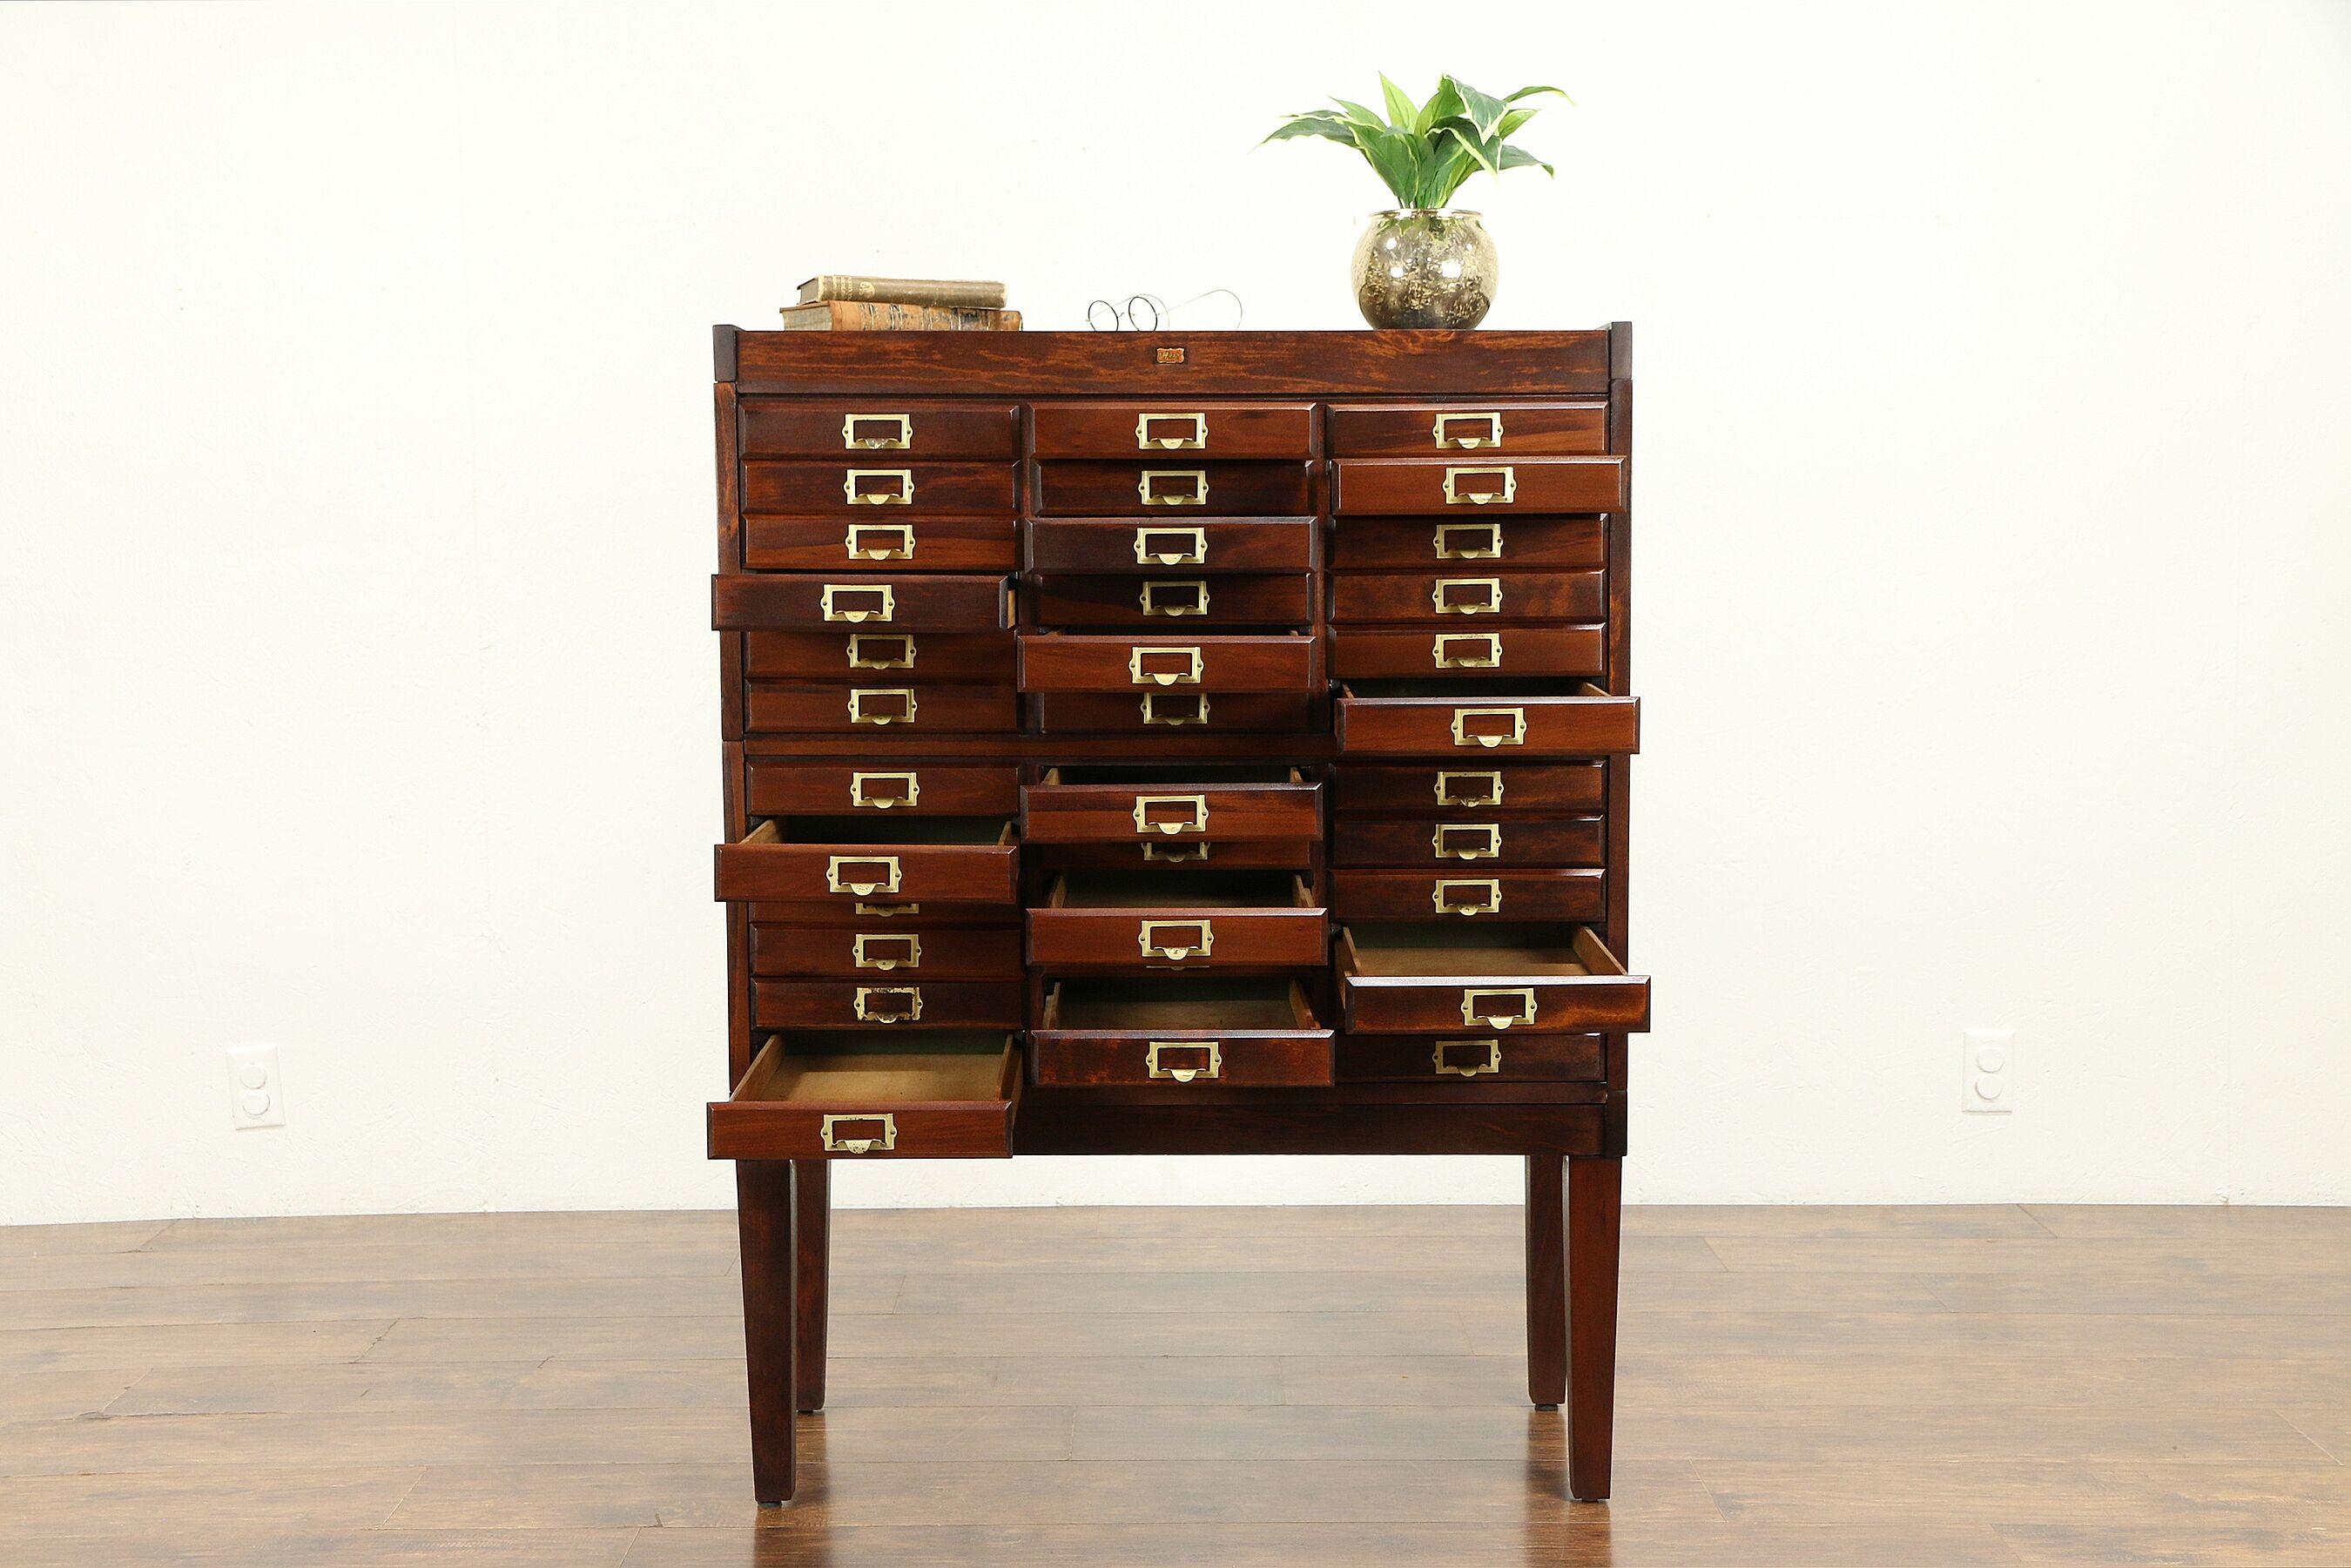 Sold Stacking 36 Drawer Antique 1915 File Collector Or Music Cabinet Weis 31278 Harp Gallery Antiques Furniture